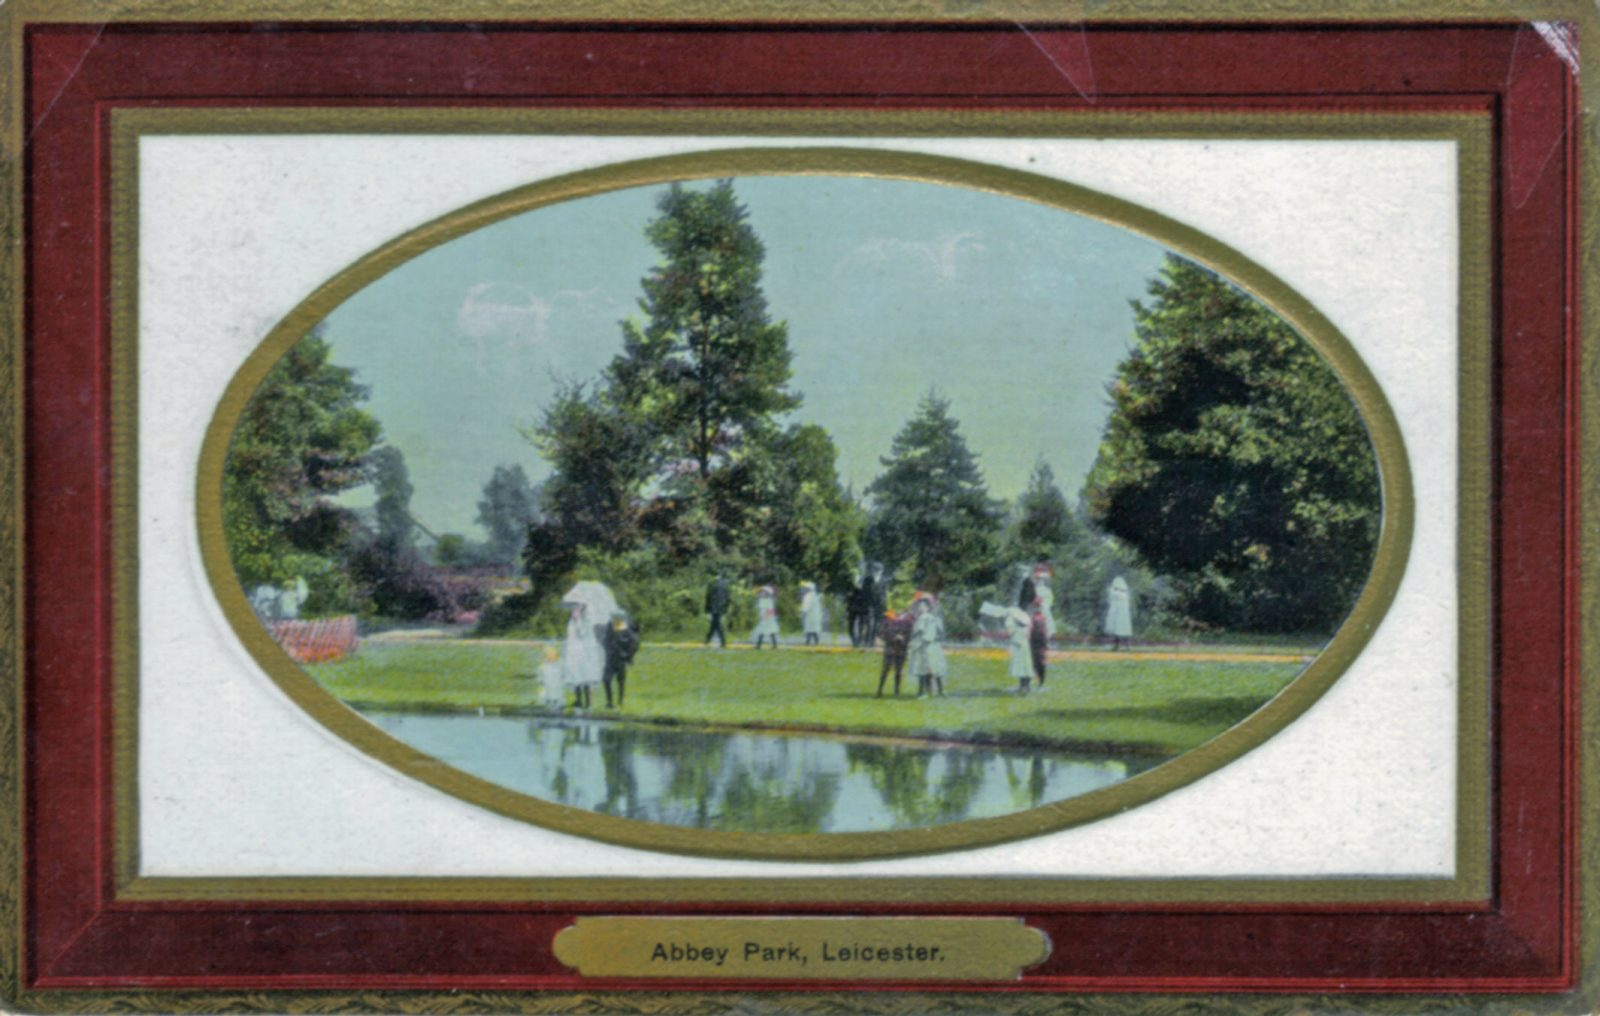 Abbey Park, Leicester. 1901-1920: The lake with reflected figures. Franked 1910 (File:1040)